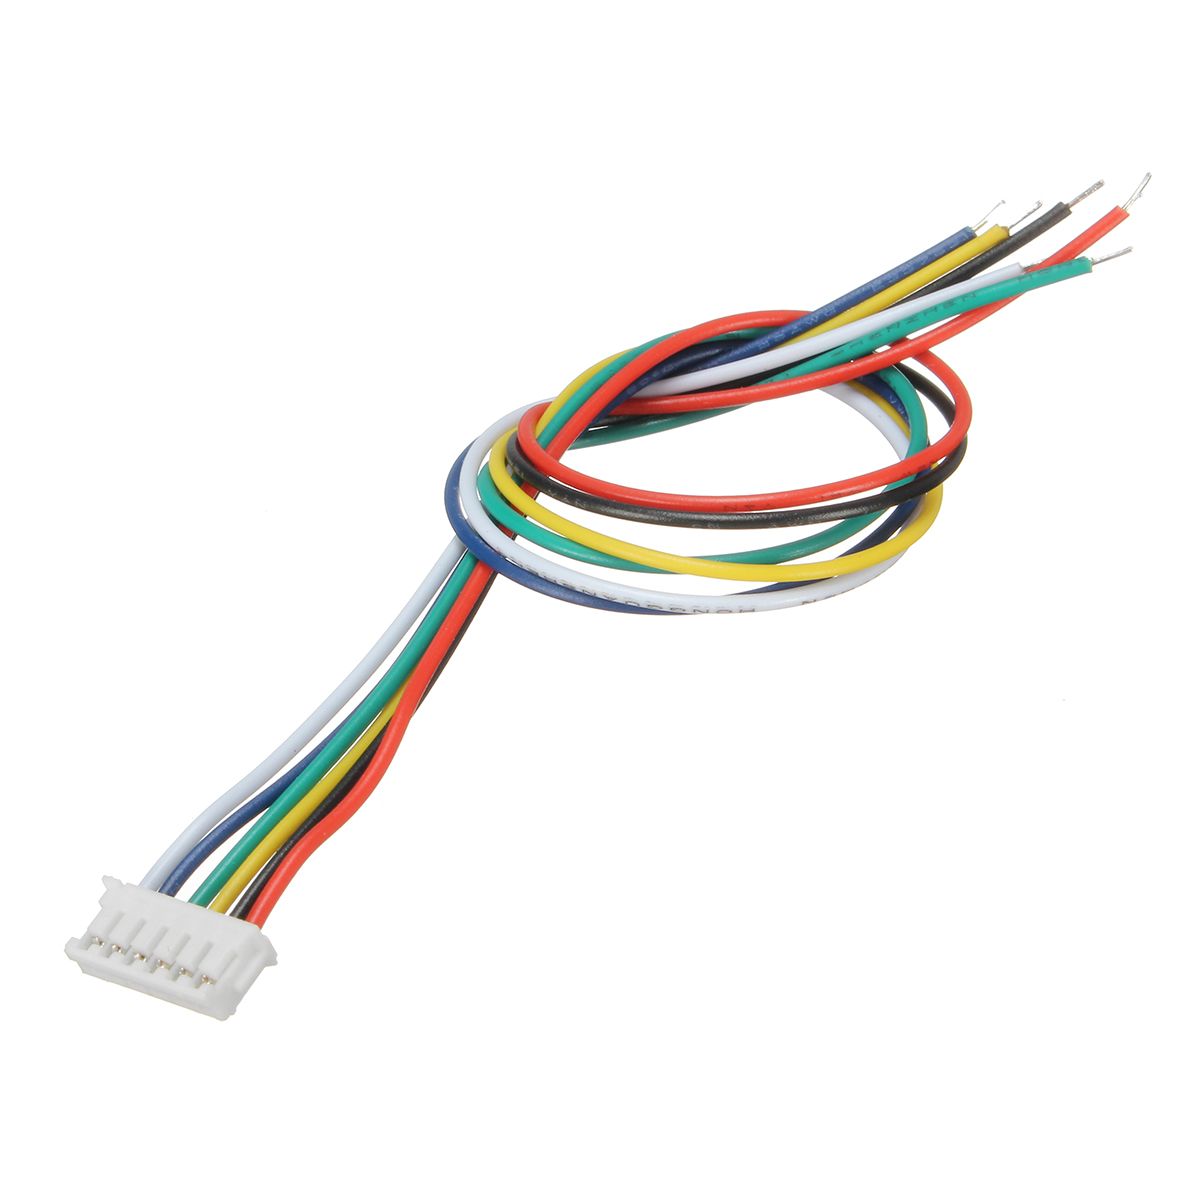 Excellway® Mini Micro JST 1.5mm ZH 6-Pin Connector Plug and Wires ...